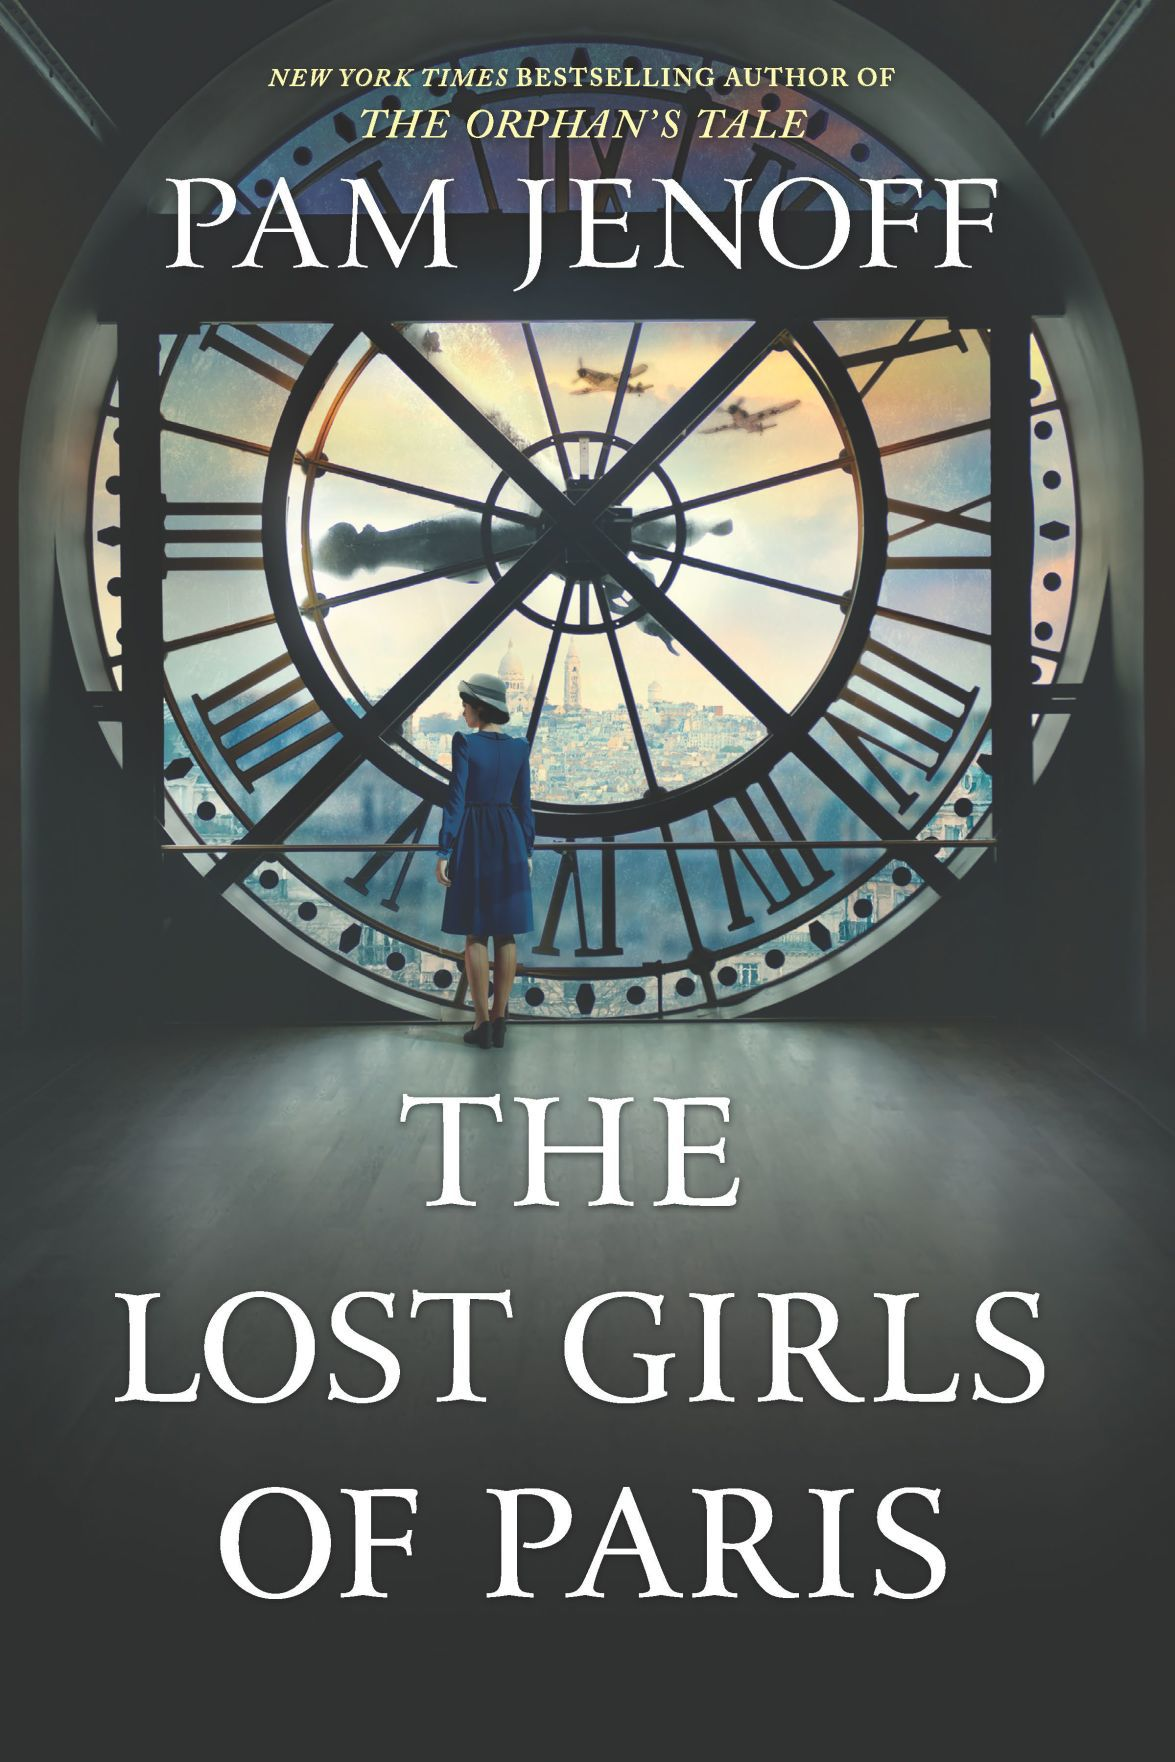 'The Lost Girls of Paris'